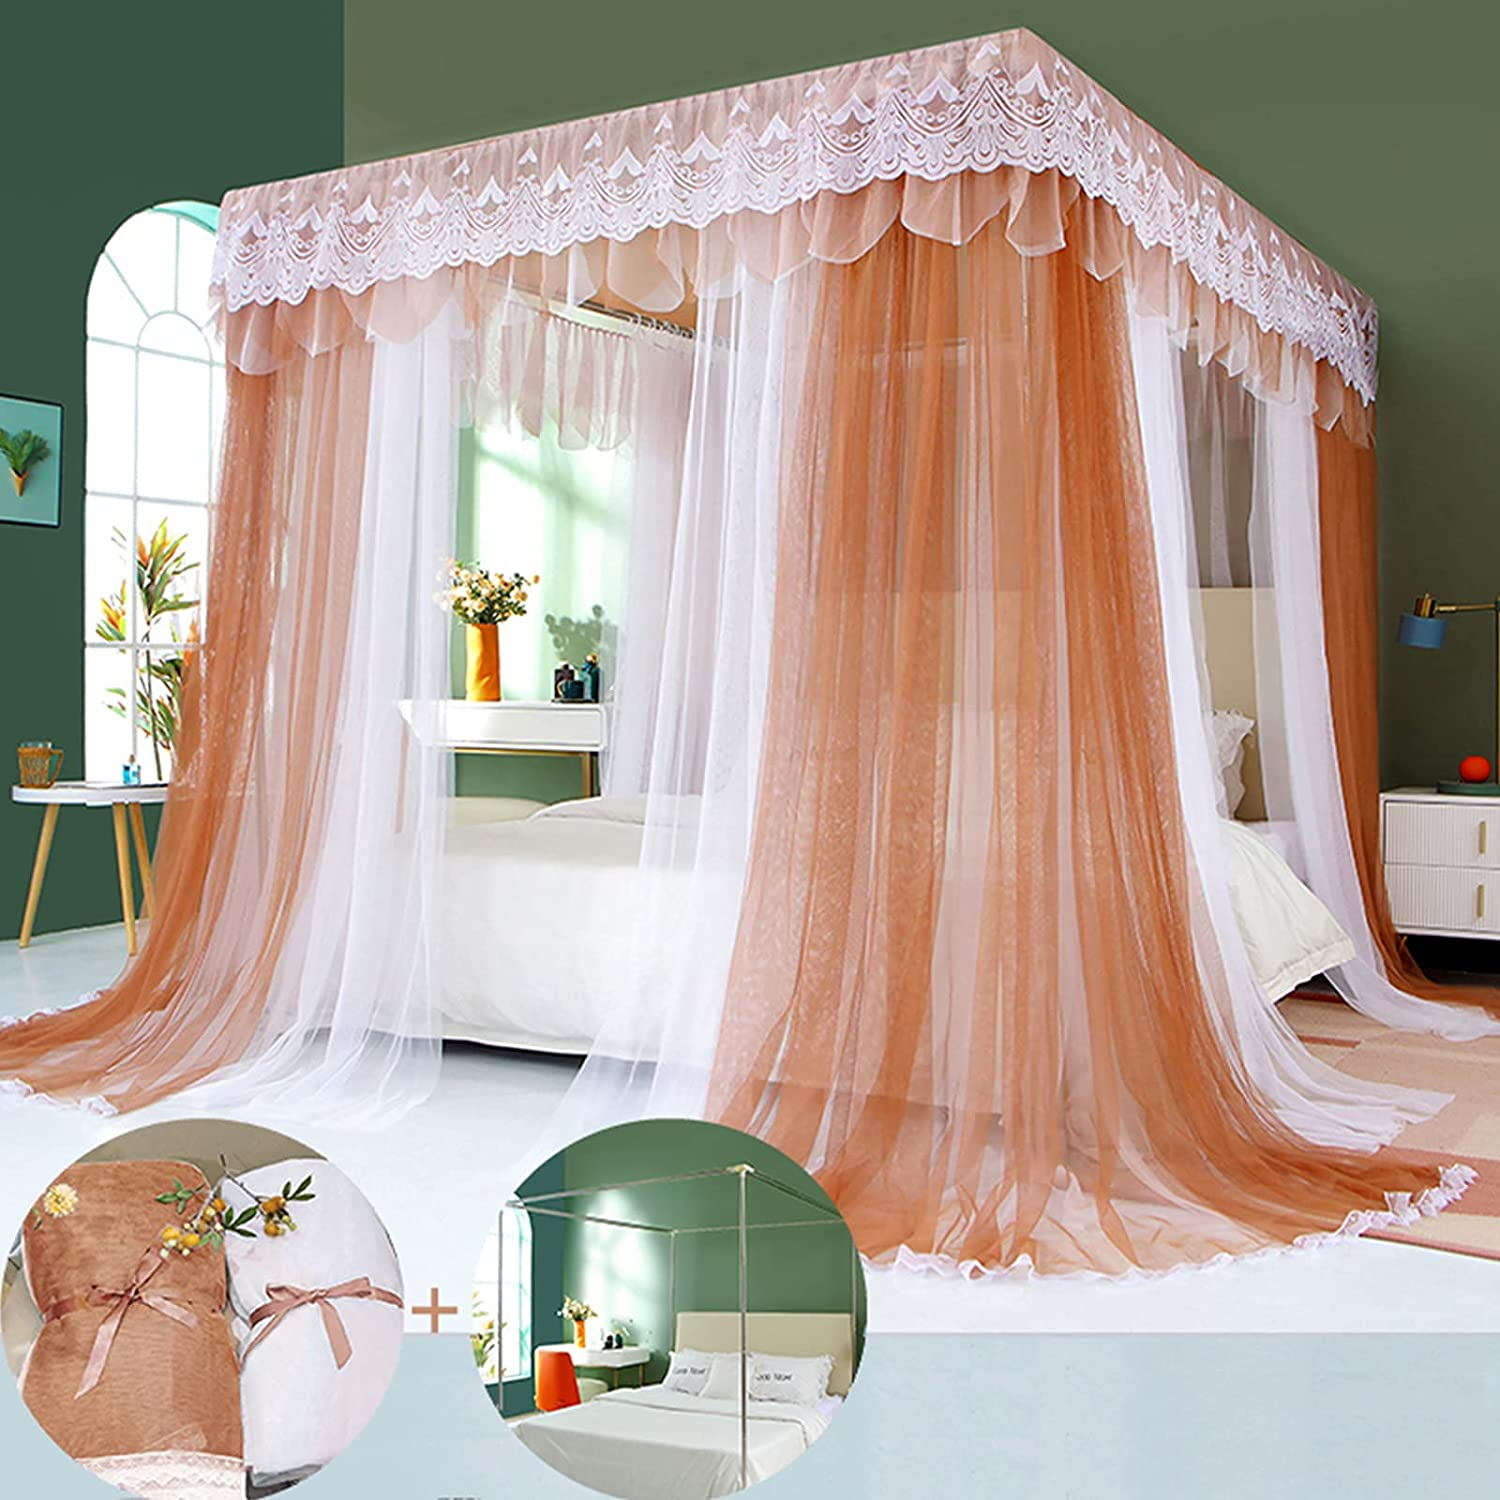 Outlet ☆ Free Shipping Sales of SALE items from new works SunnyLisa Canopy Frame for Bed with Size Netting Be Mesh Queen -